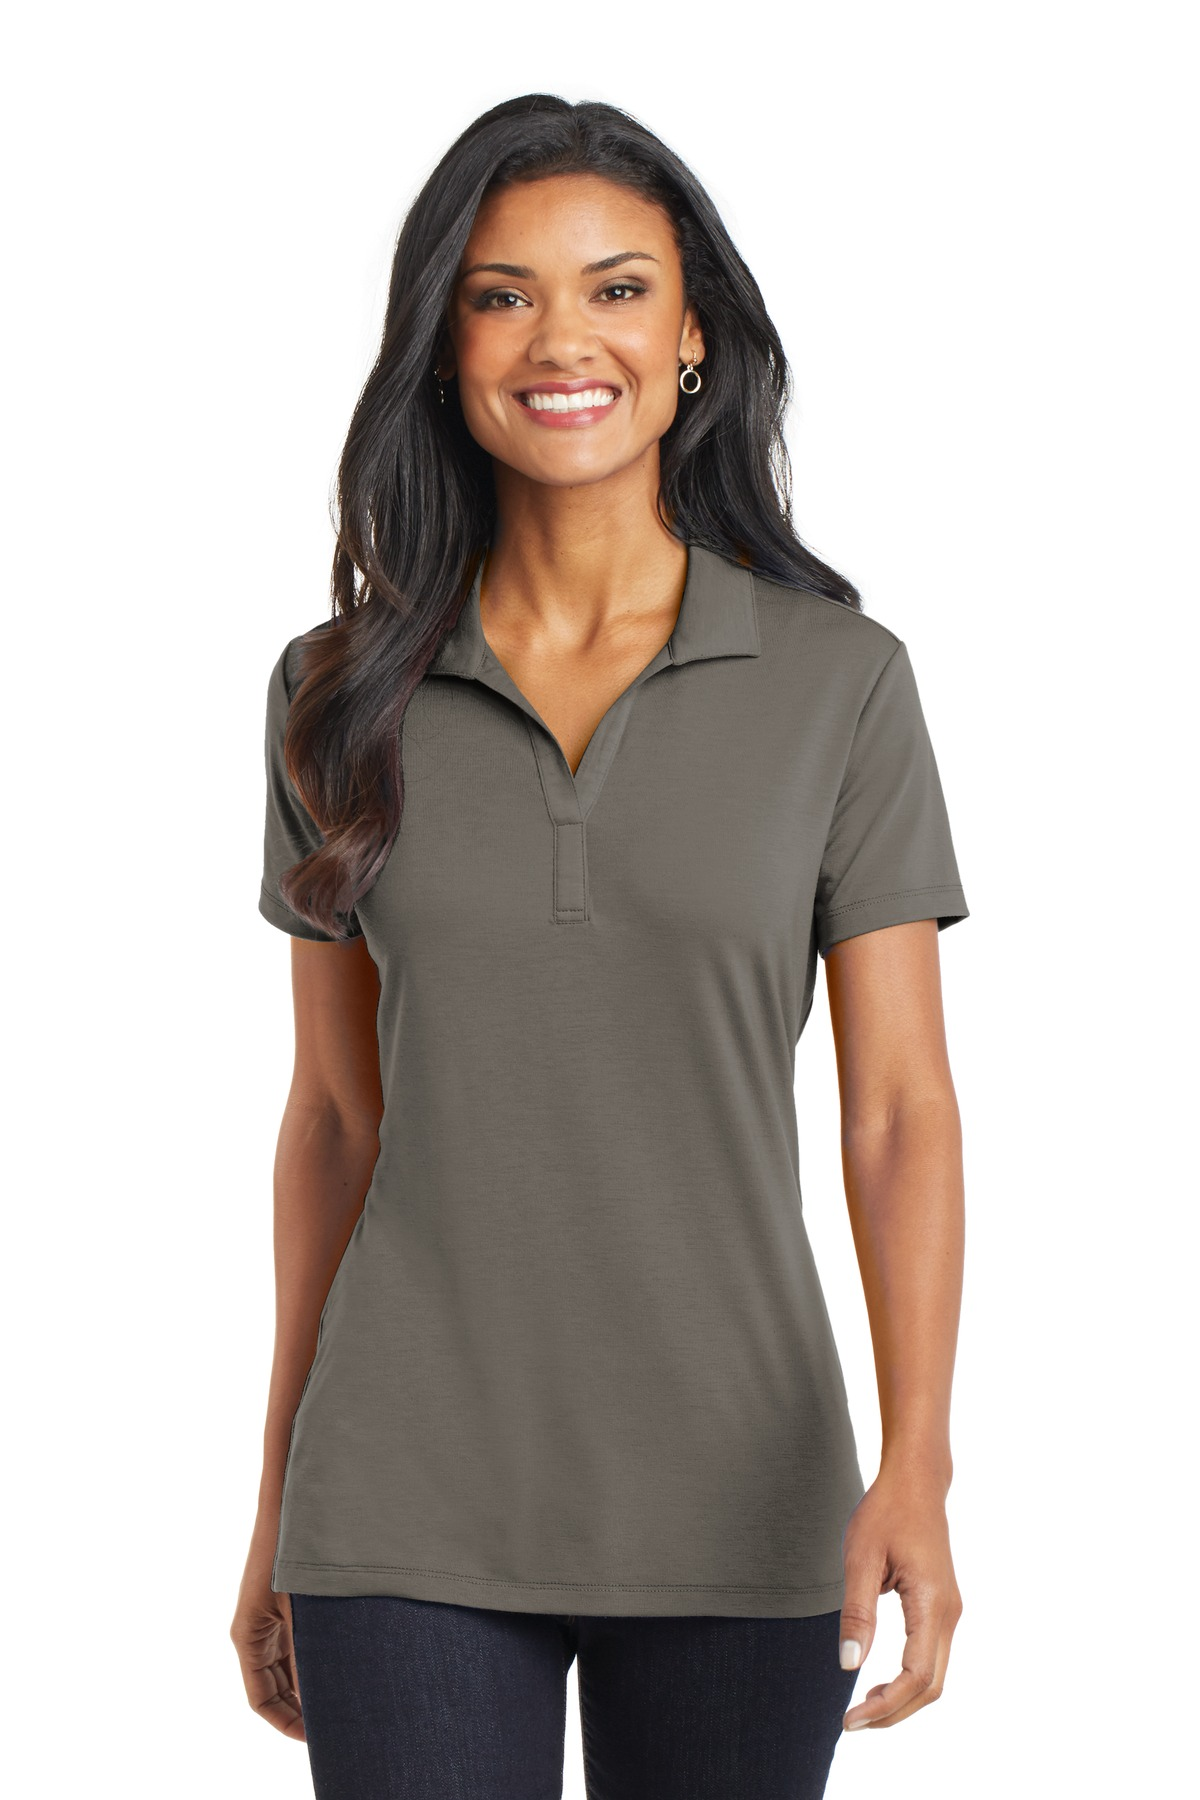 Port Authority ®  Ladies Cotton Touch ™  Performance Polo. L568 - Grey Smoke